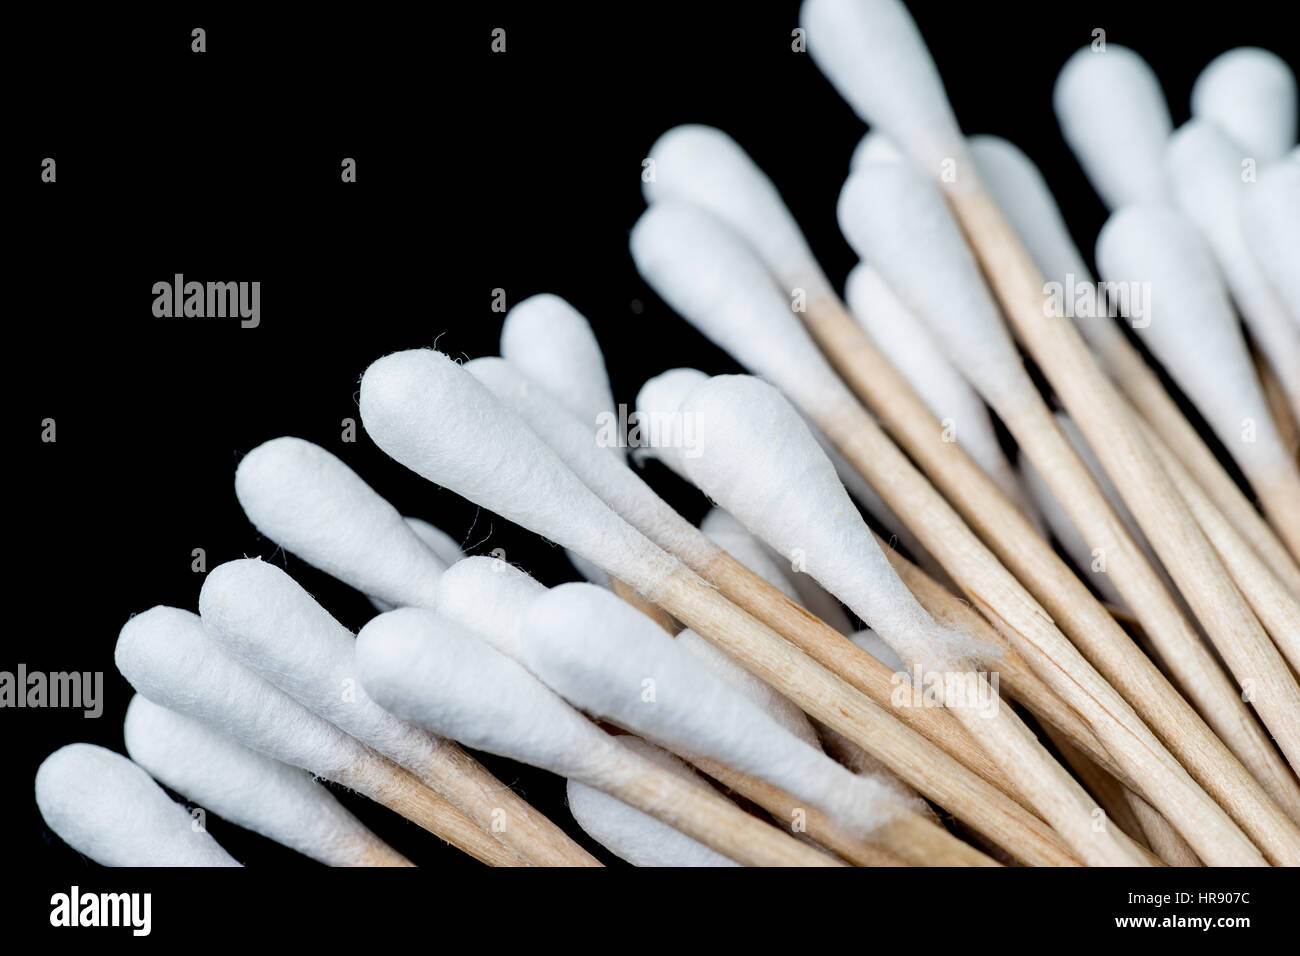 Pile of cotton swabs, q tips, spread out like a fan. The swabs are photographed against a black background Stock Photo